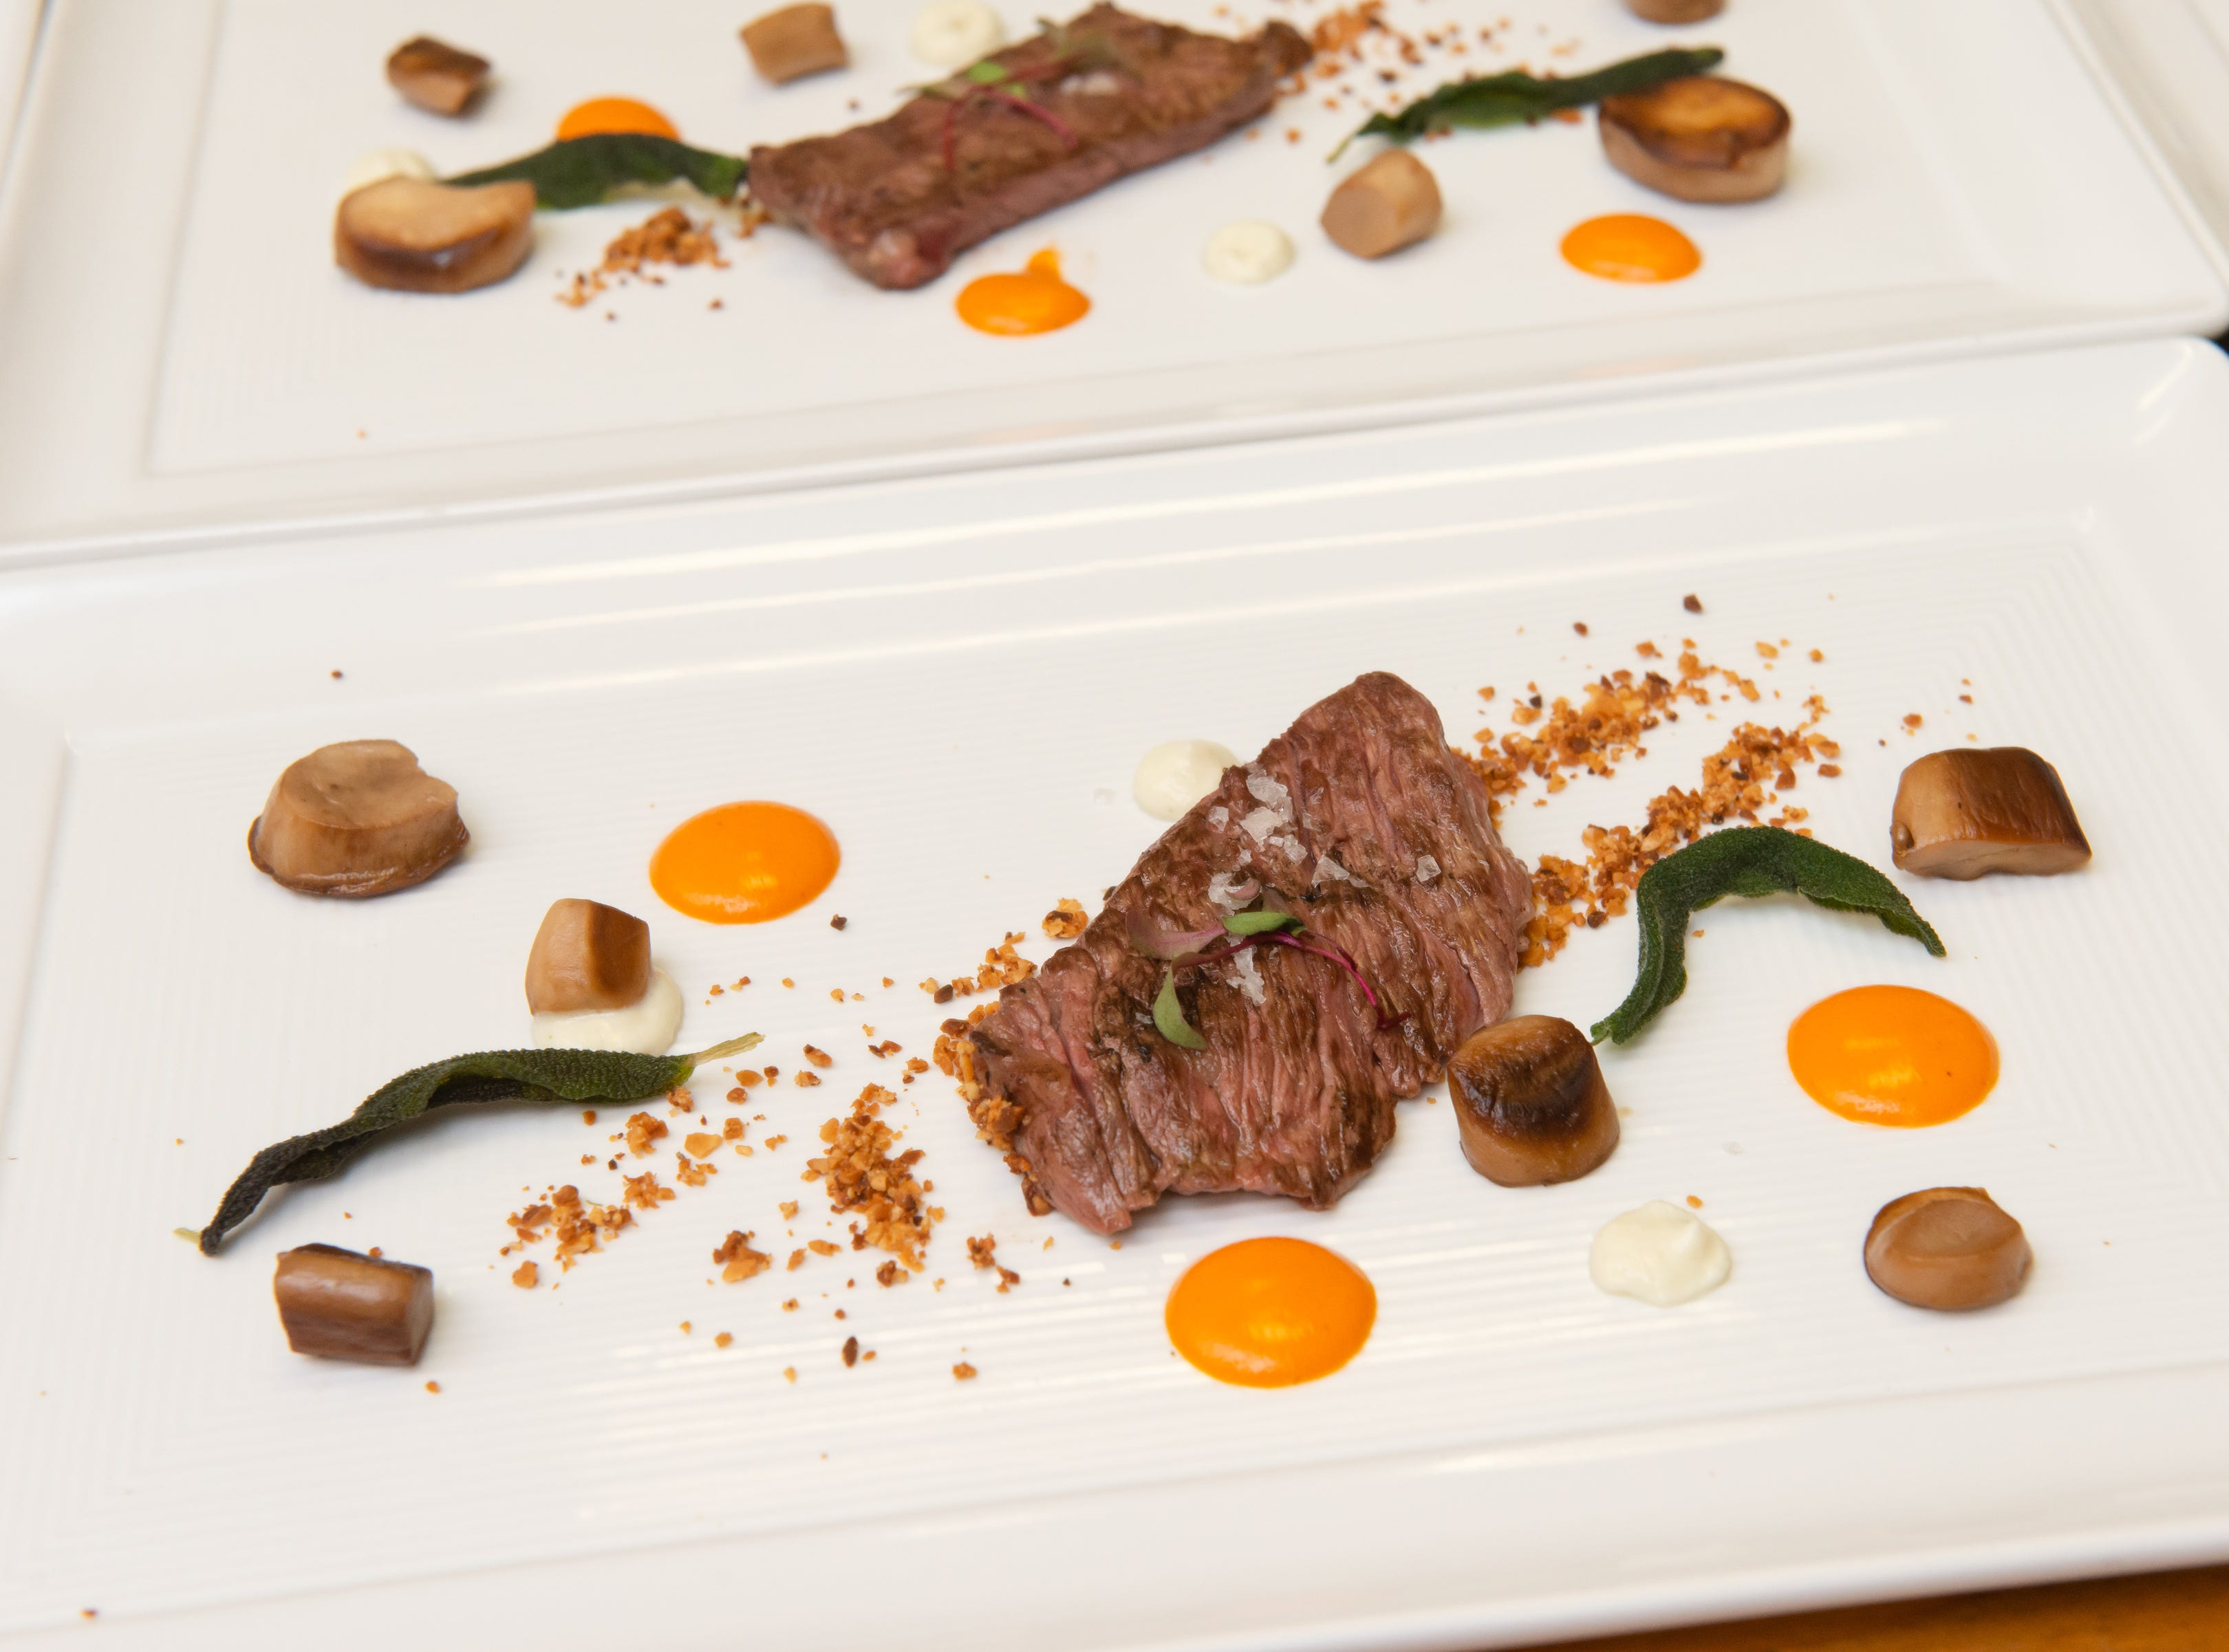 The second course: Wagyu Zabuton, Goat Cheese Sage Cream, Monterey Mushroom Sauteed King Trumpets, Almond Dust, Red Pepper Harissa Sauce and Fried Sage Leaves at the James Beard Foundation Celebrity Chef Dinner held at the Brevard Zoo. (Photo by Amanda Stratford, for FLORIDA TODAY)